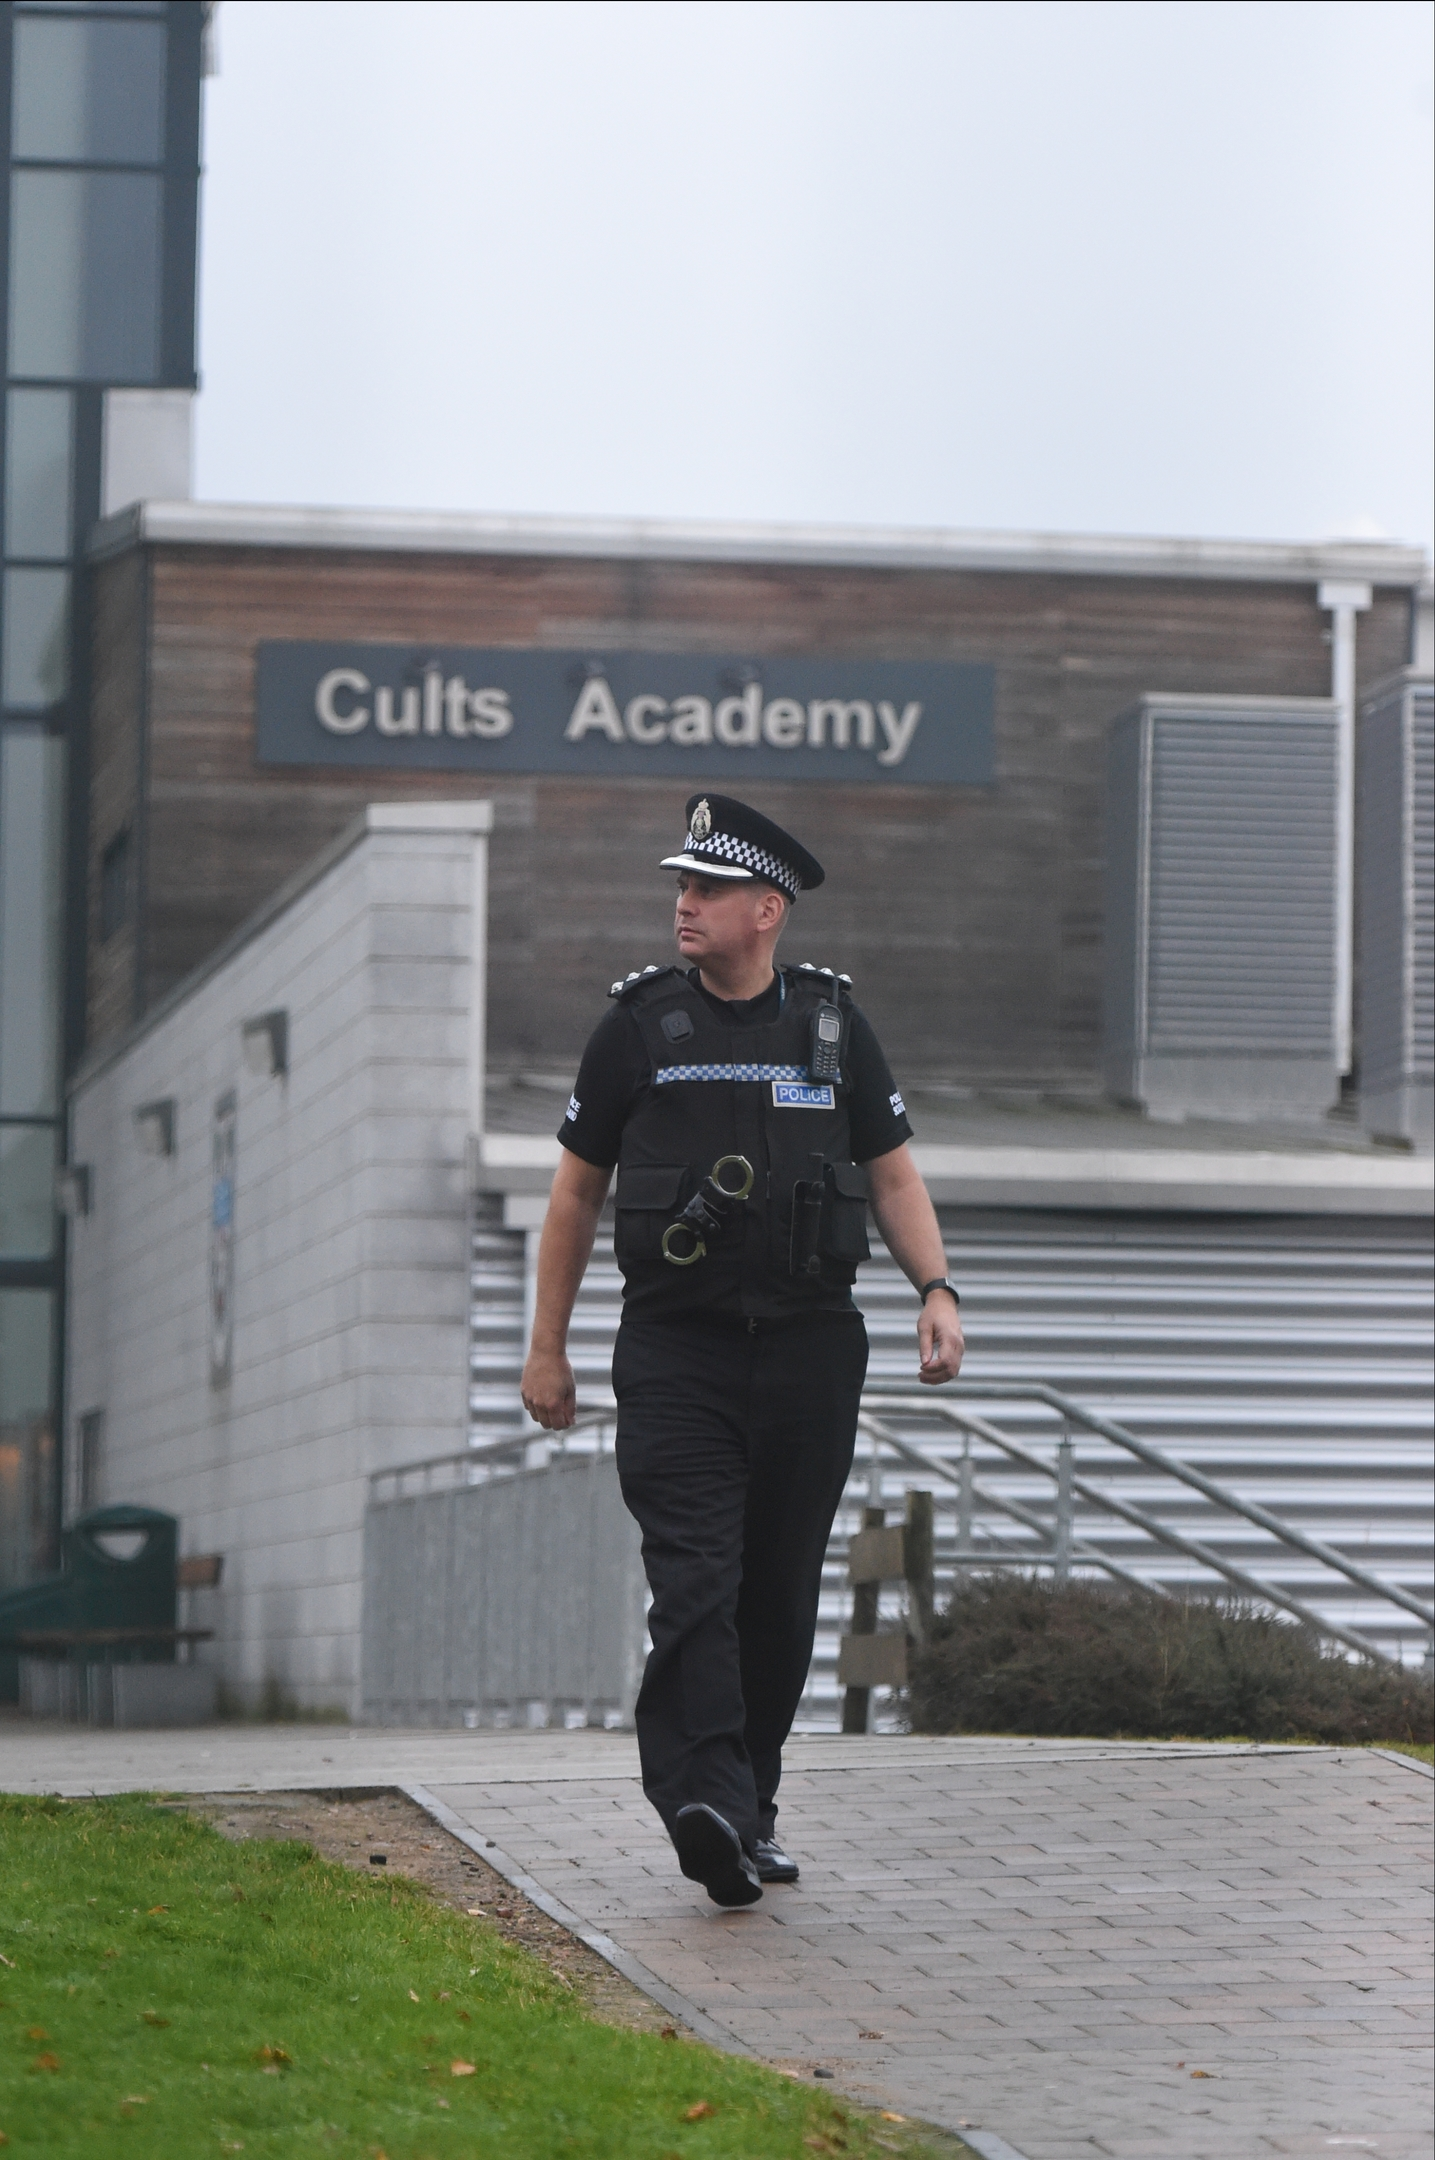 The community has been left devastated by the young pupil's tragic death